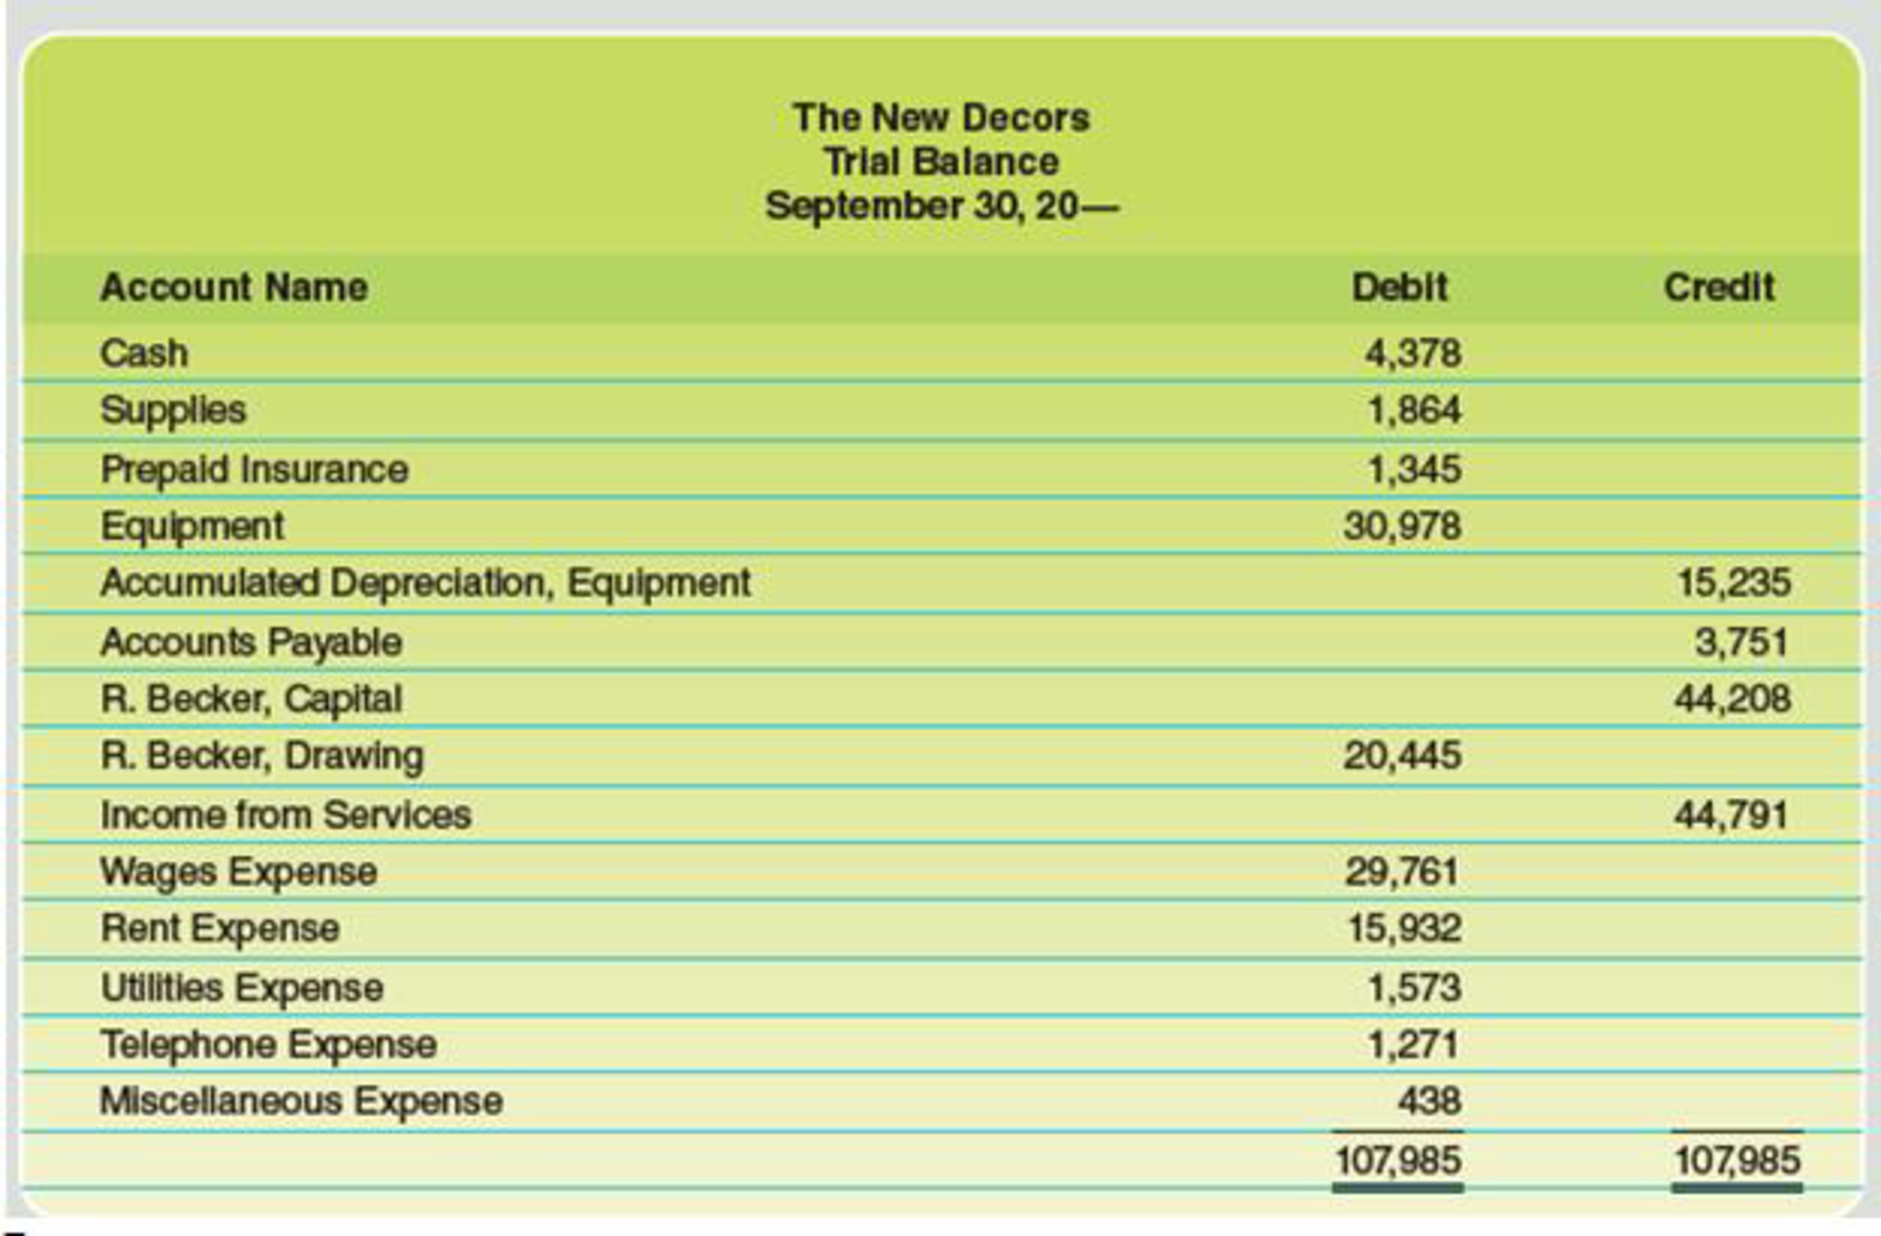 Chapter 4, Problem 2PB, The trial balance of The New Decors for the month ended September 30 is as follows: Data for the